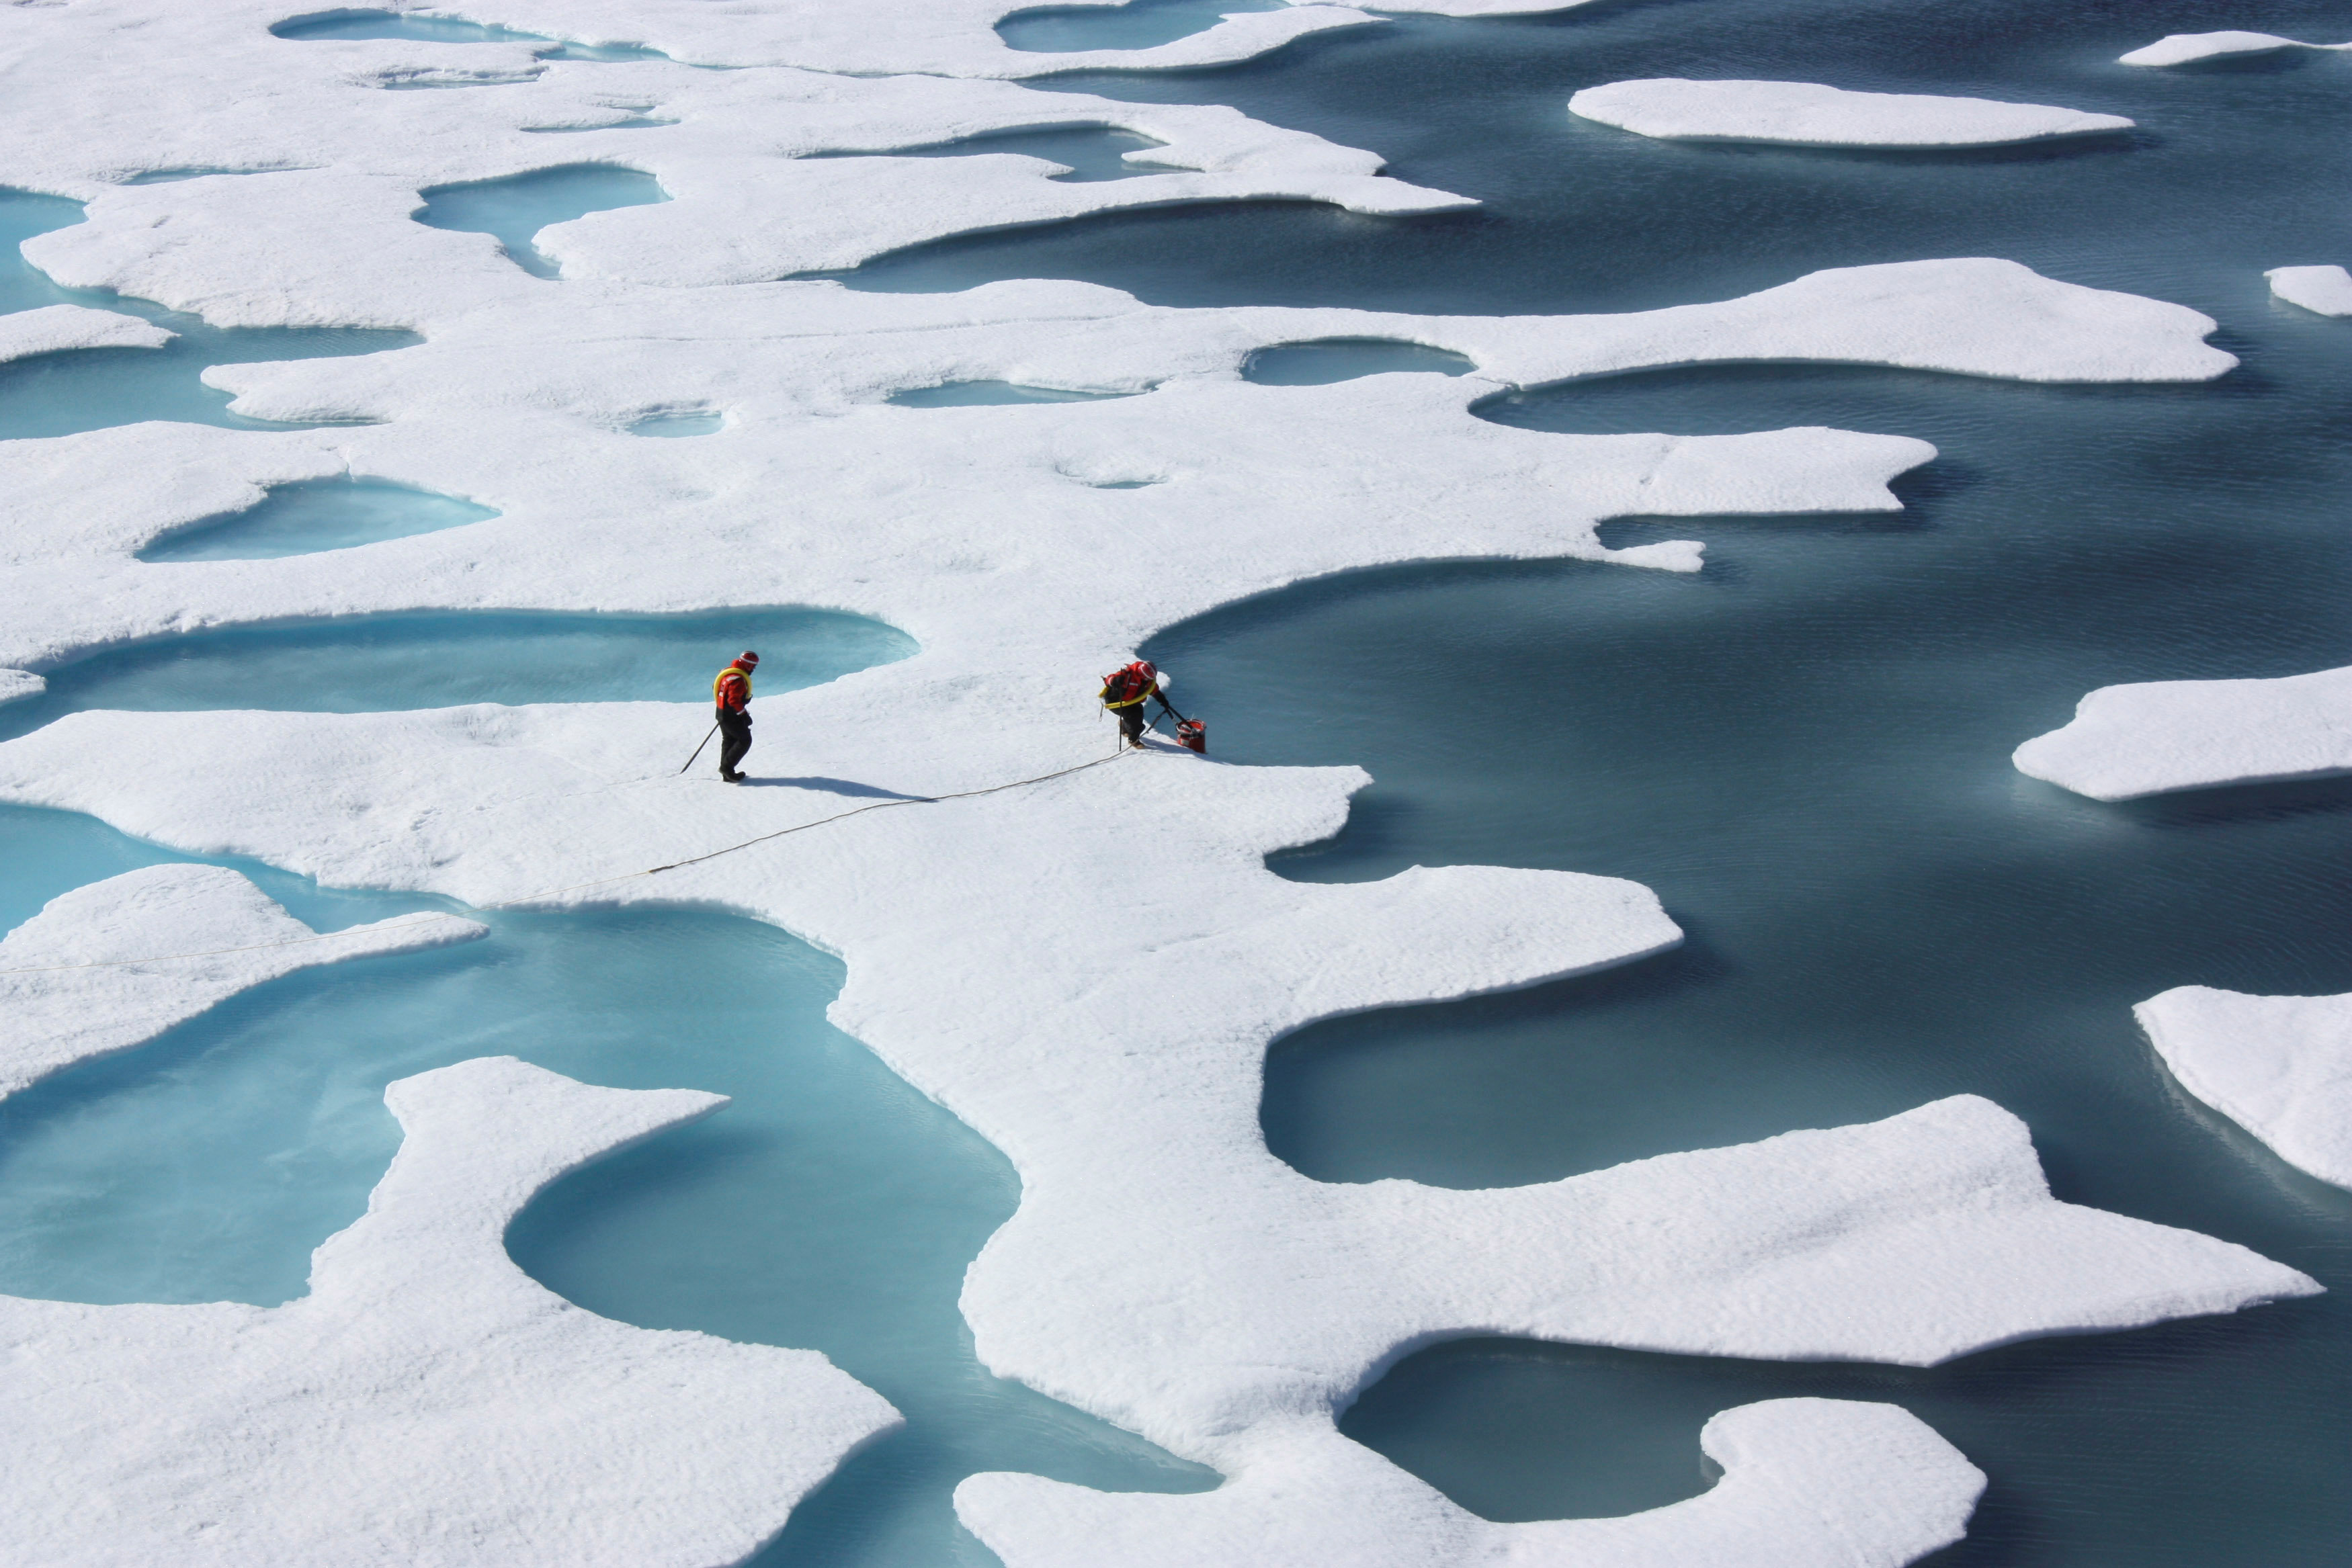 FILE PHOTO: The crew of the U.S. Coast Guard Cutter Healy, in the midst of their ICESCAPE mission, retrieves supplies for some mid-mission fixes dropped by parachute from a C-130 in the Arctic Ocean in this July 12, 2011 NASA handout photo obtained by Reuters June 11, 2012. NASA/Kathryn Hansen/Handout via REUTERS/File Photo